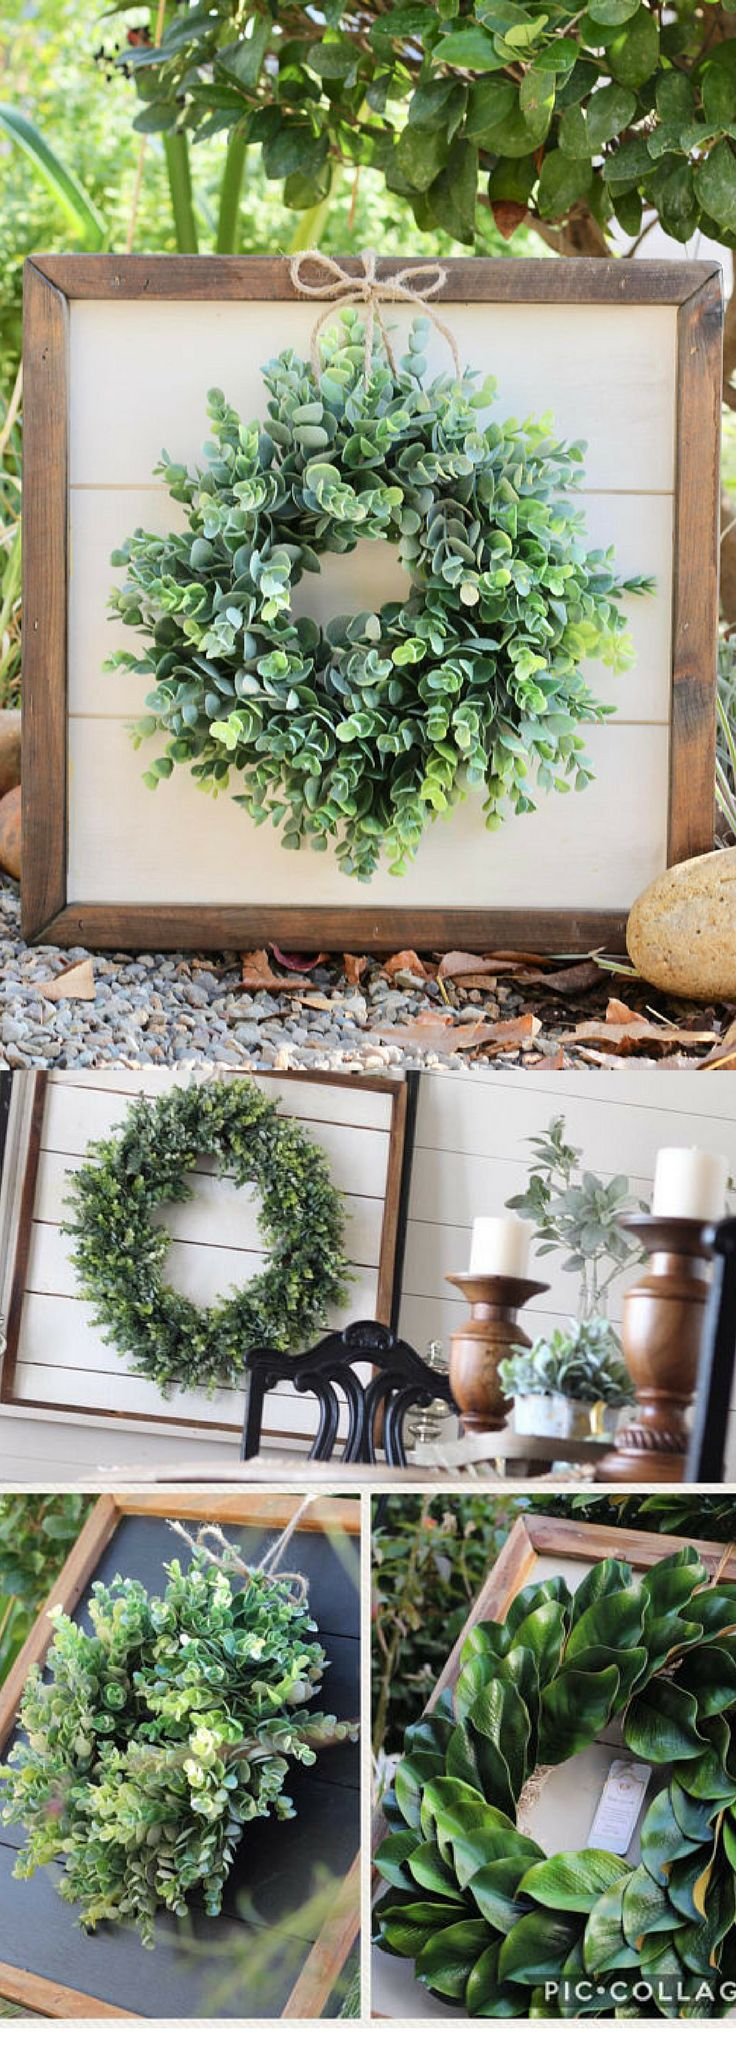 Shiplap Art & Mini Eucalyptus OR Magnolia Wreath - Small 15x15 - Reclaimed Wood - Handmade - Farmhouse - Home Decor - Custom Pieces - Spring - Fixer Upper Style - Rustic #ad #DIYHomeDecorSpring